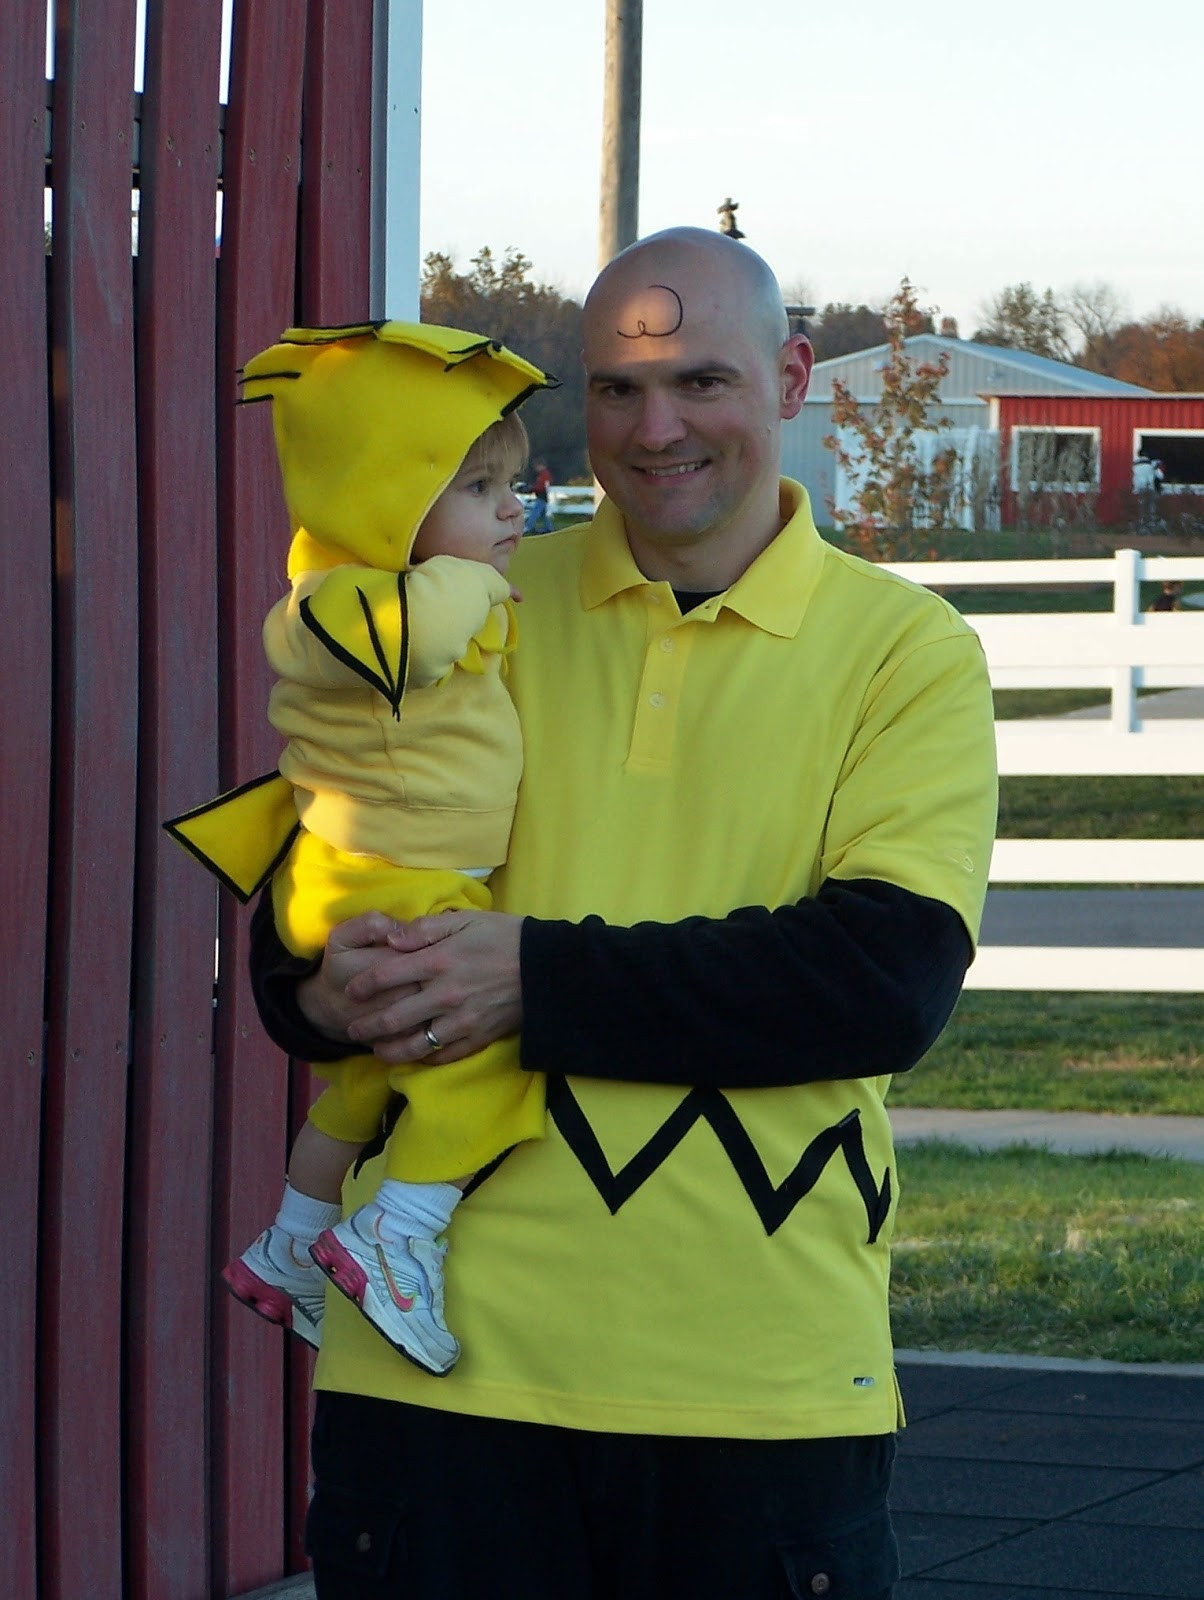 Best ideas about Woodstock Costume DIY . Save or Pin repurpose relove Halloween Decorations & Peanuts Costumes Now.